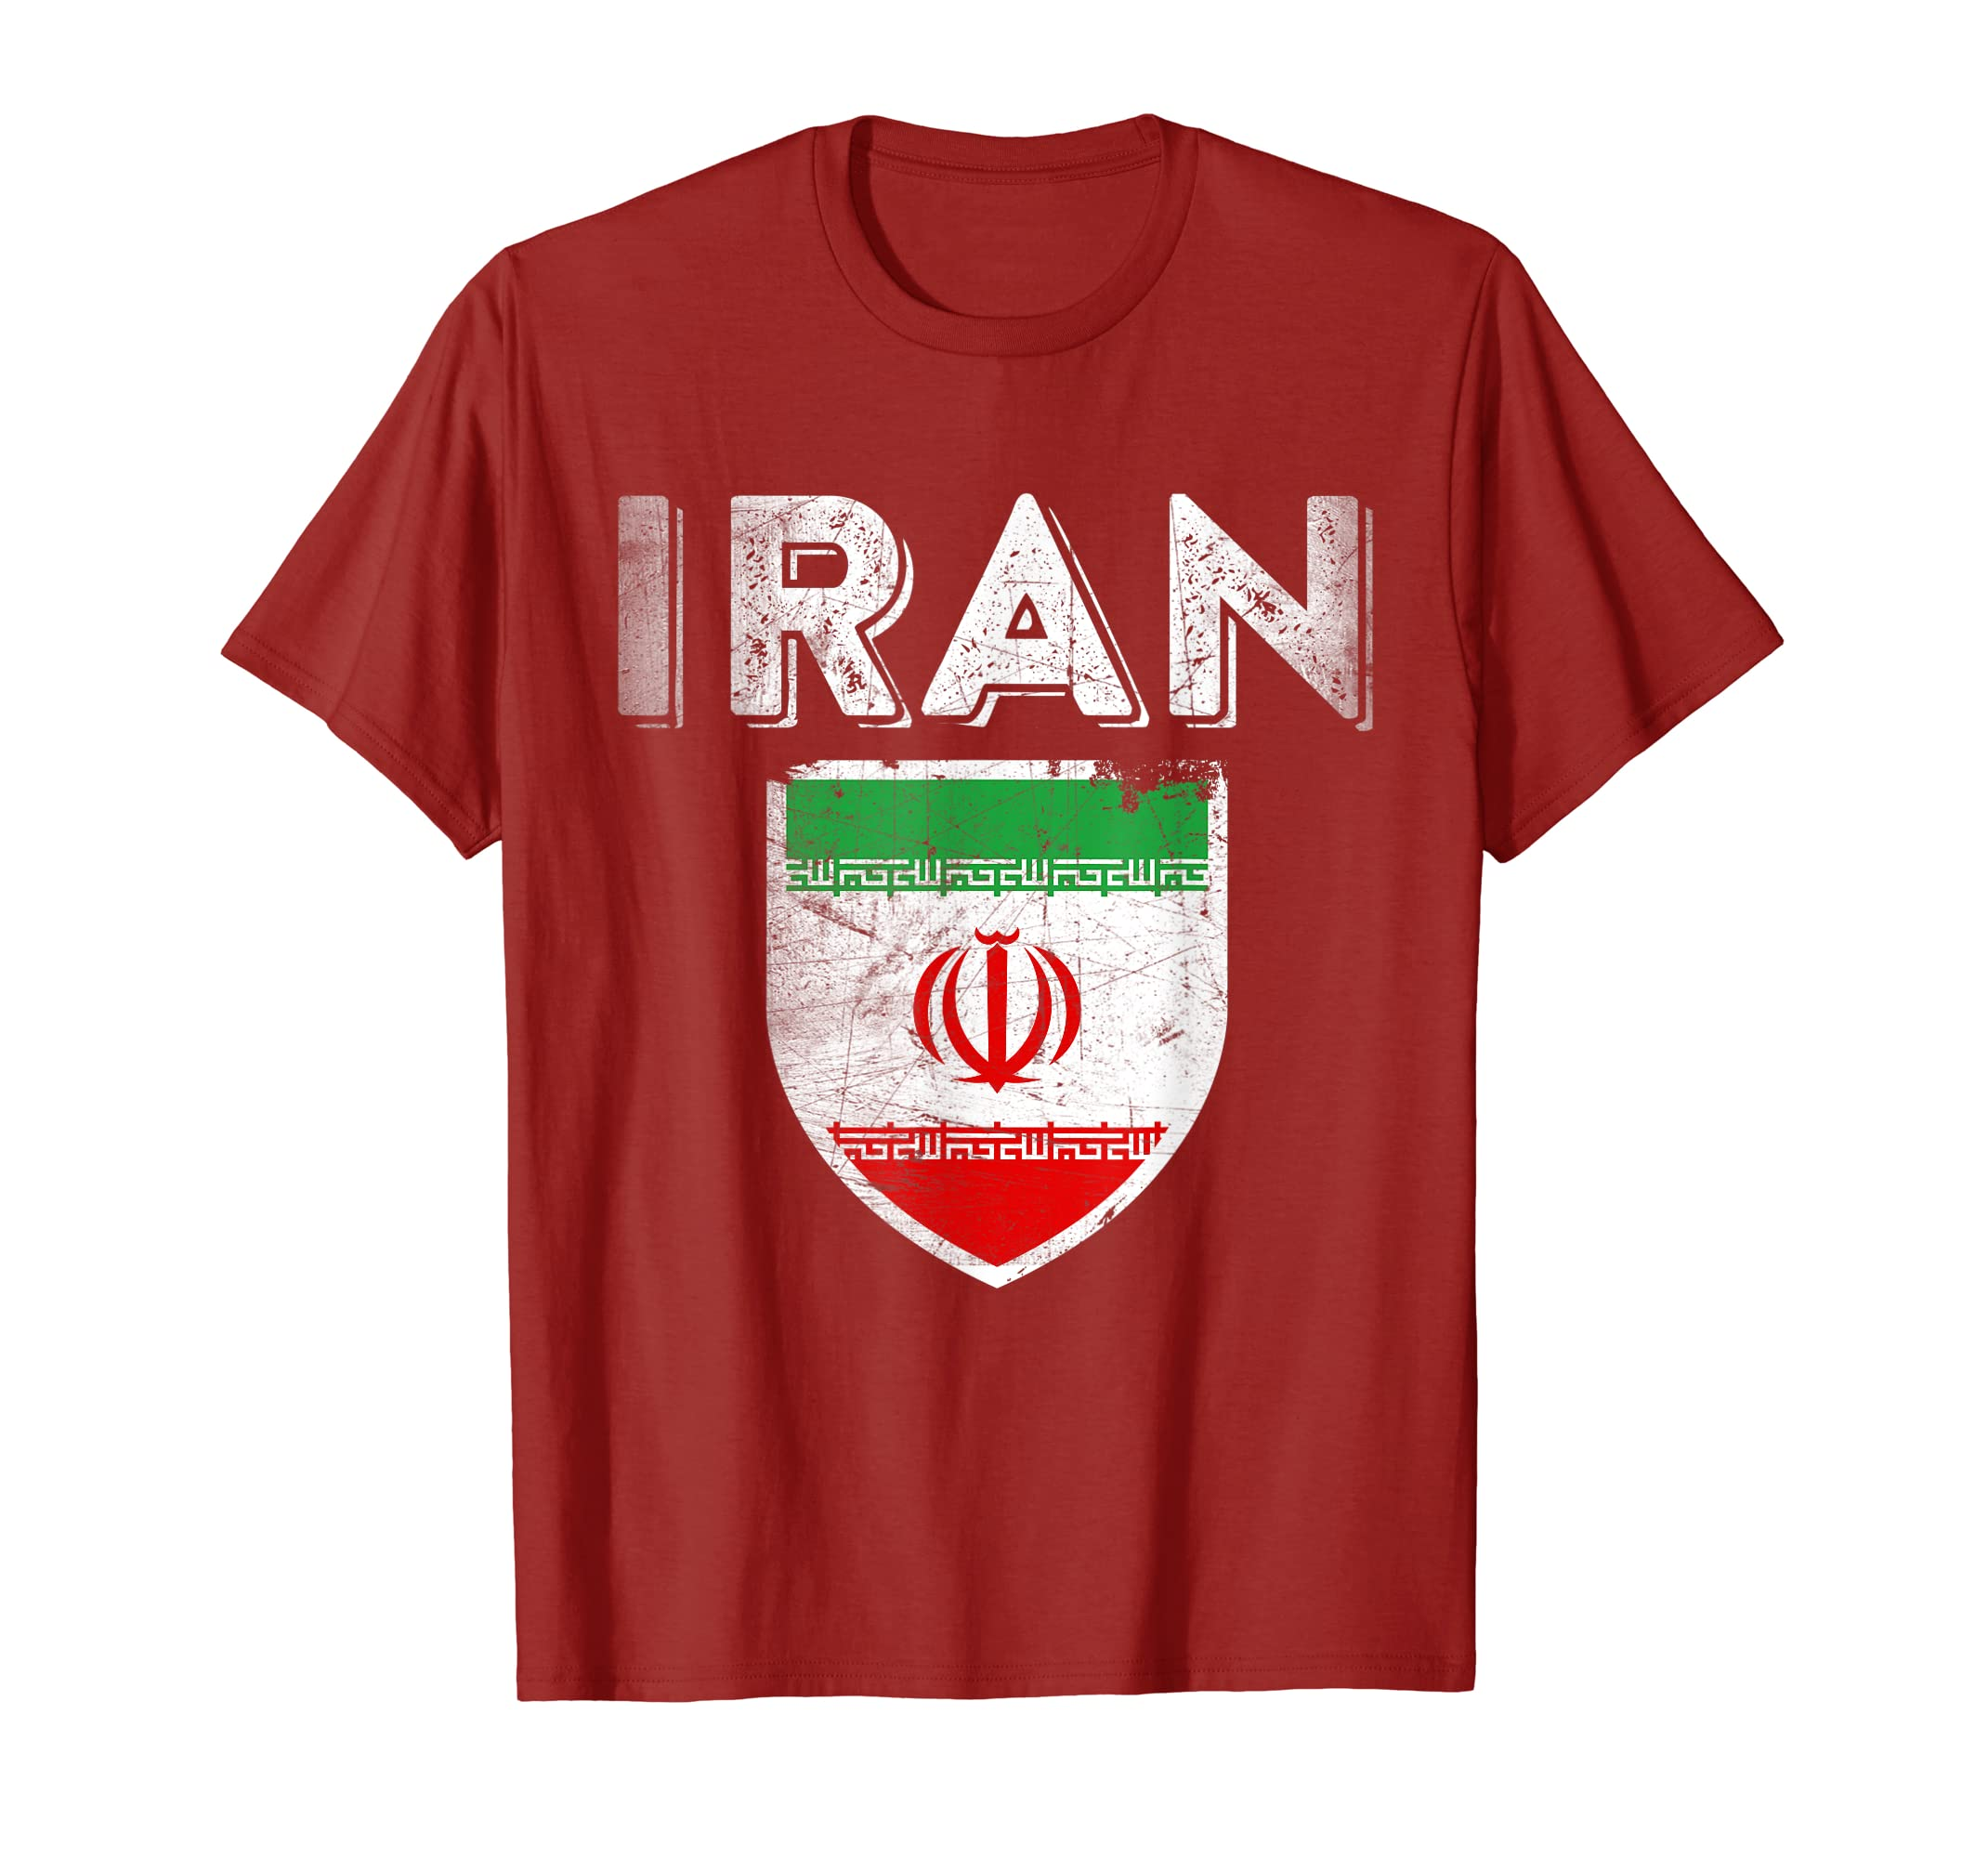 2b87b9940 Amazon.com  Iran Tee Iranian Jersey T-Shirt Persian Flag Shirt Soccer   Clothing